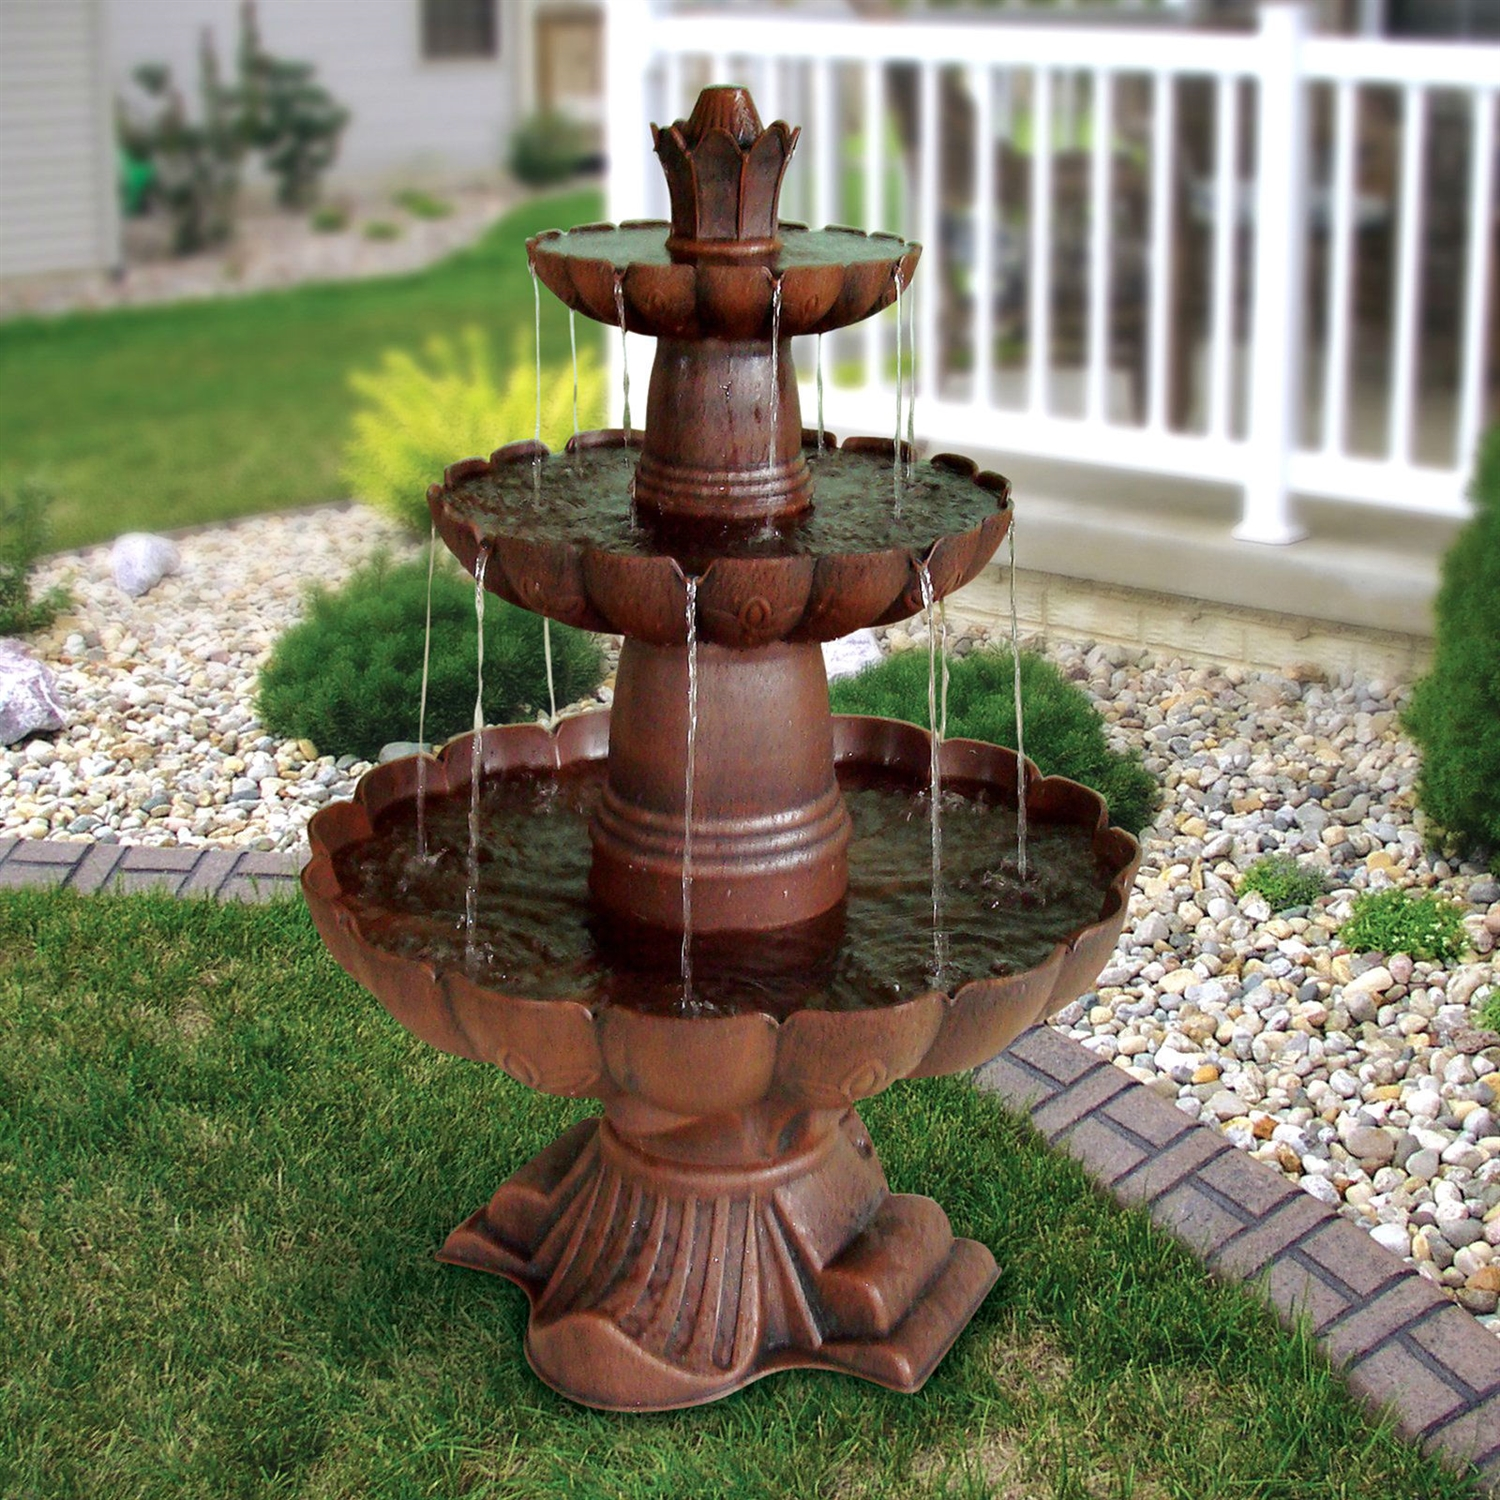 3 Tier Outdoor Garden Fountain In Durable Poly Vinyl